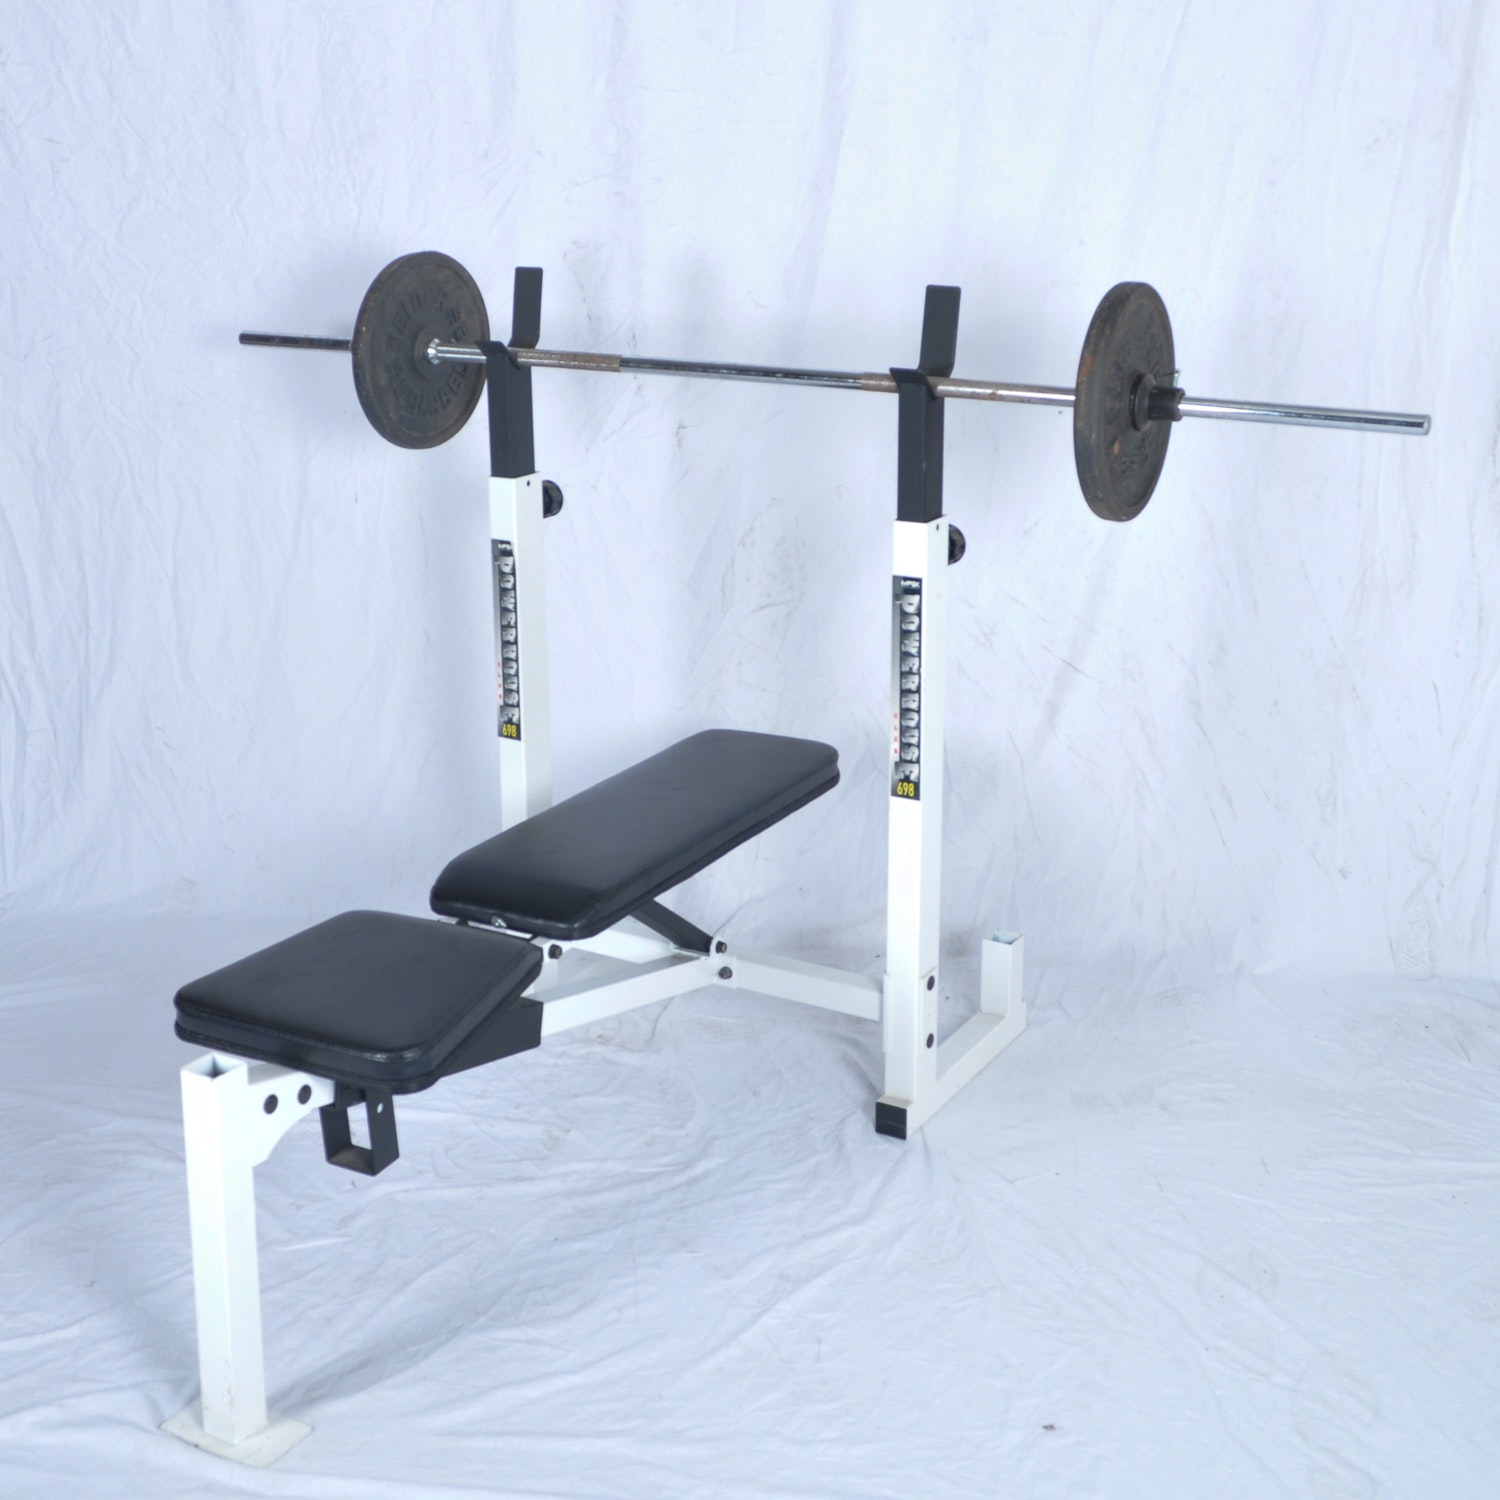 IMPEX Powerhouse 698 Workout Bench and Weight Lift